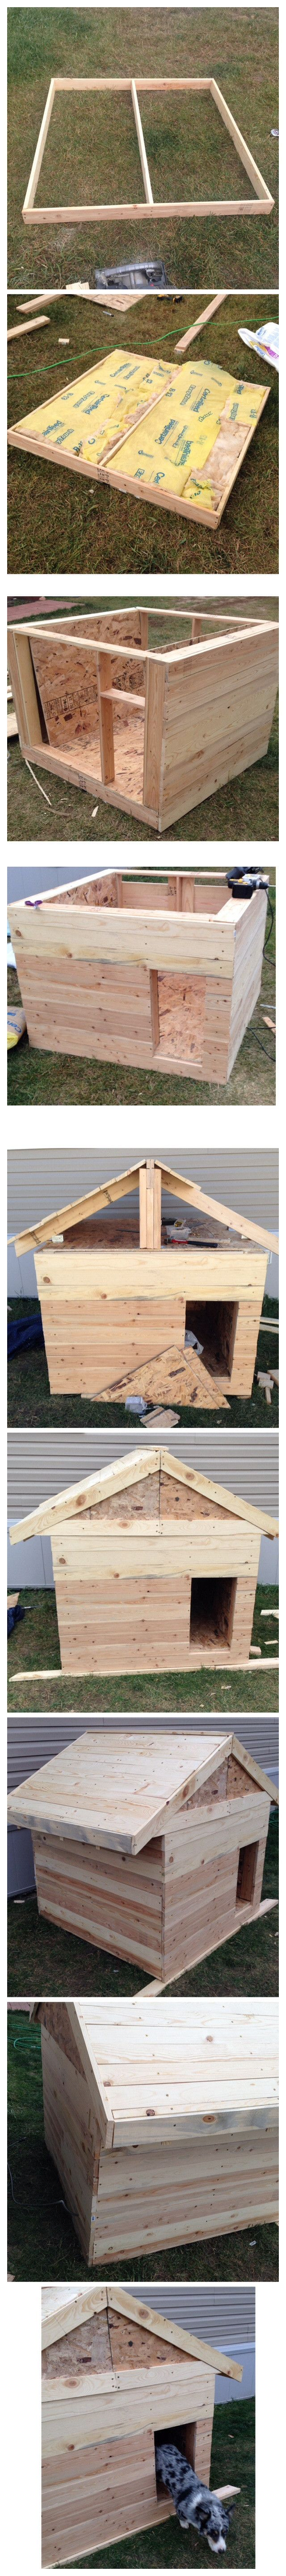 Building A Heated And Insulated Dog House With Minimal Tools A